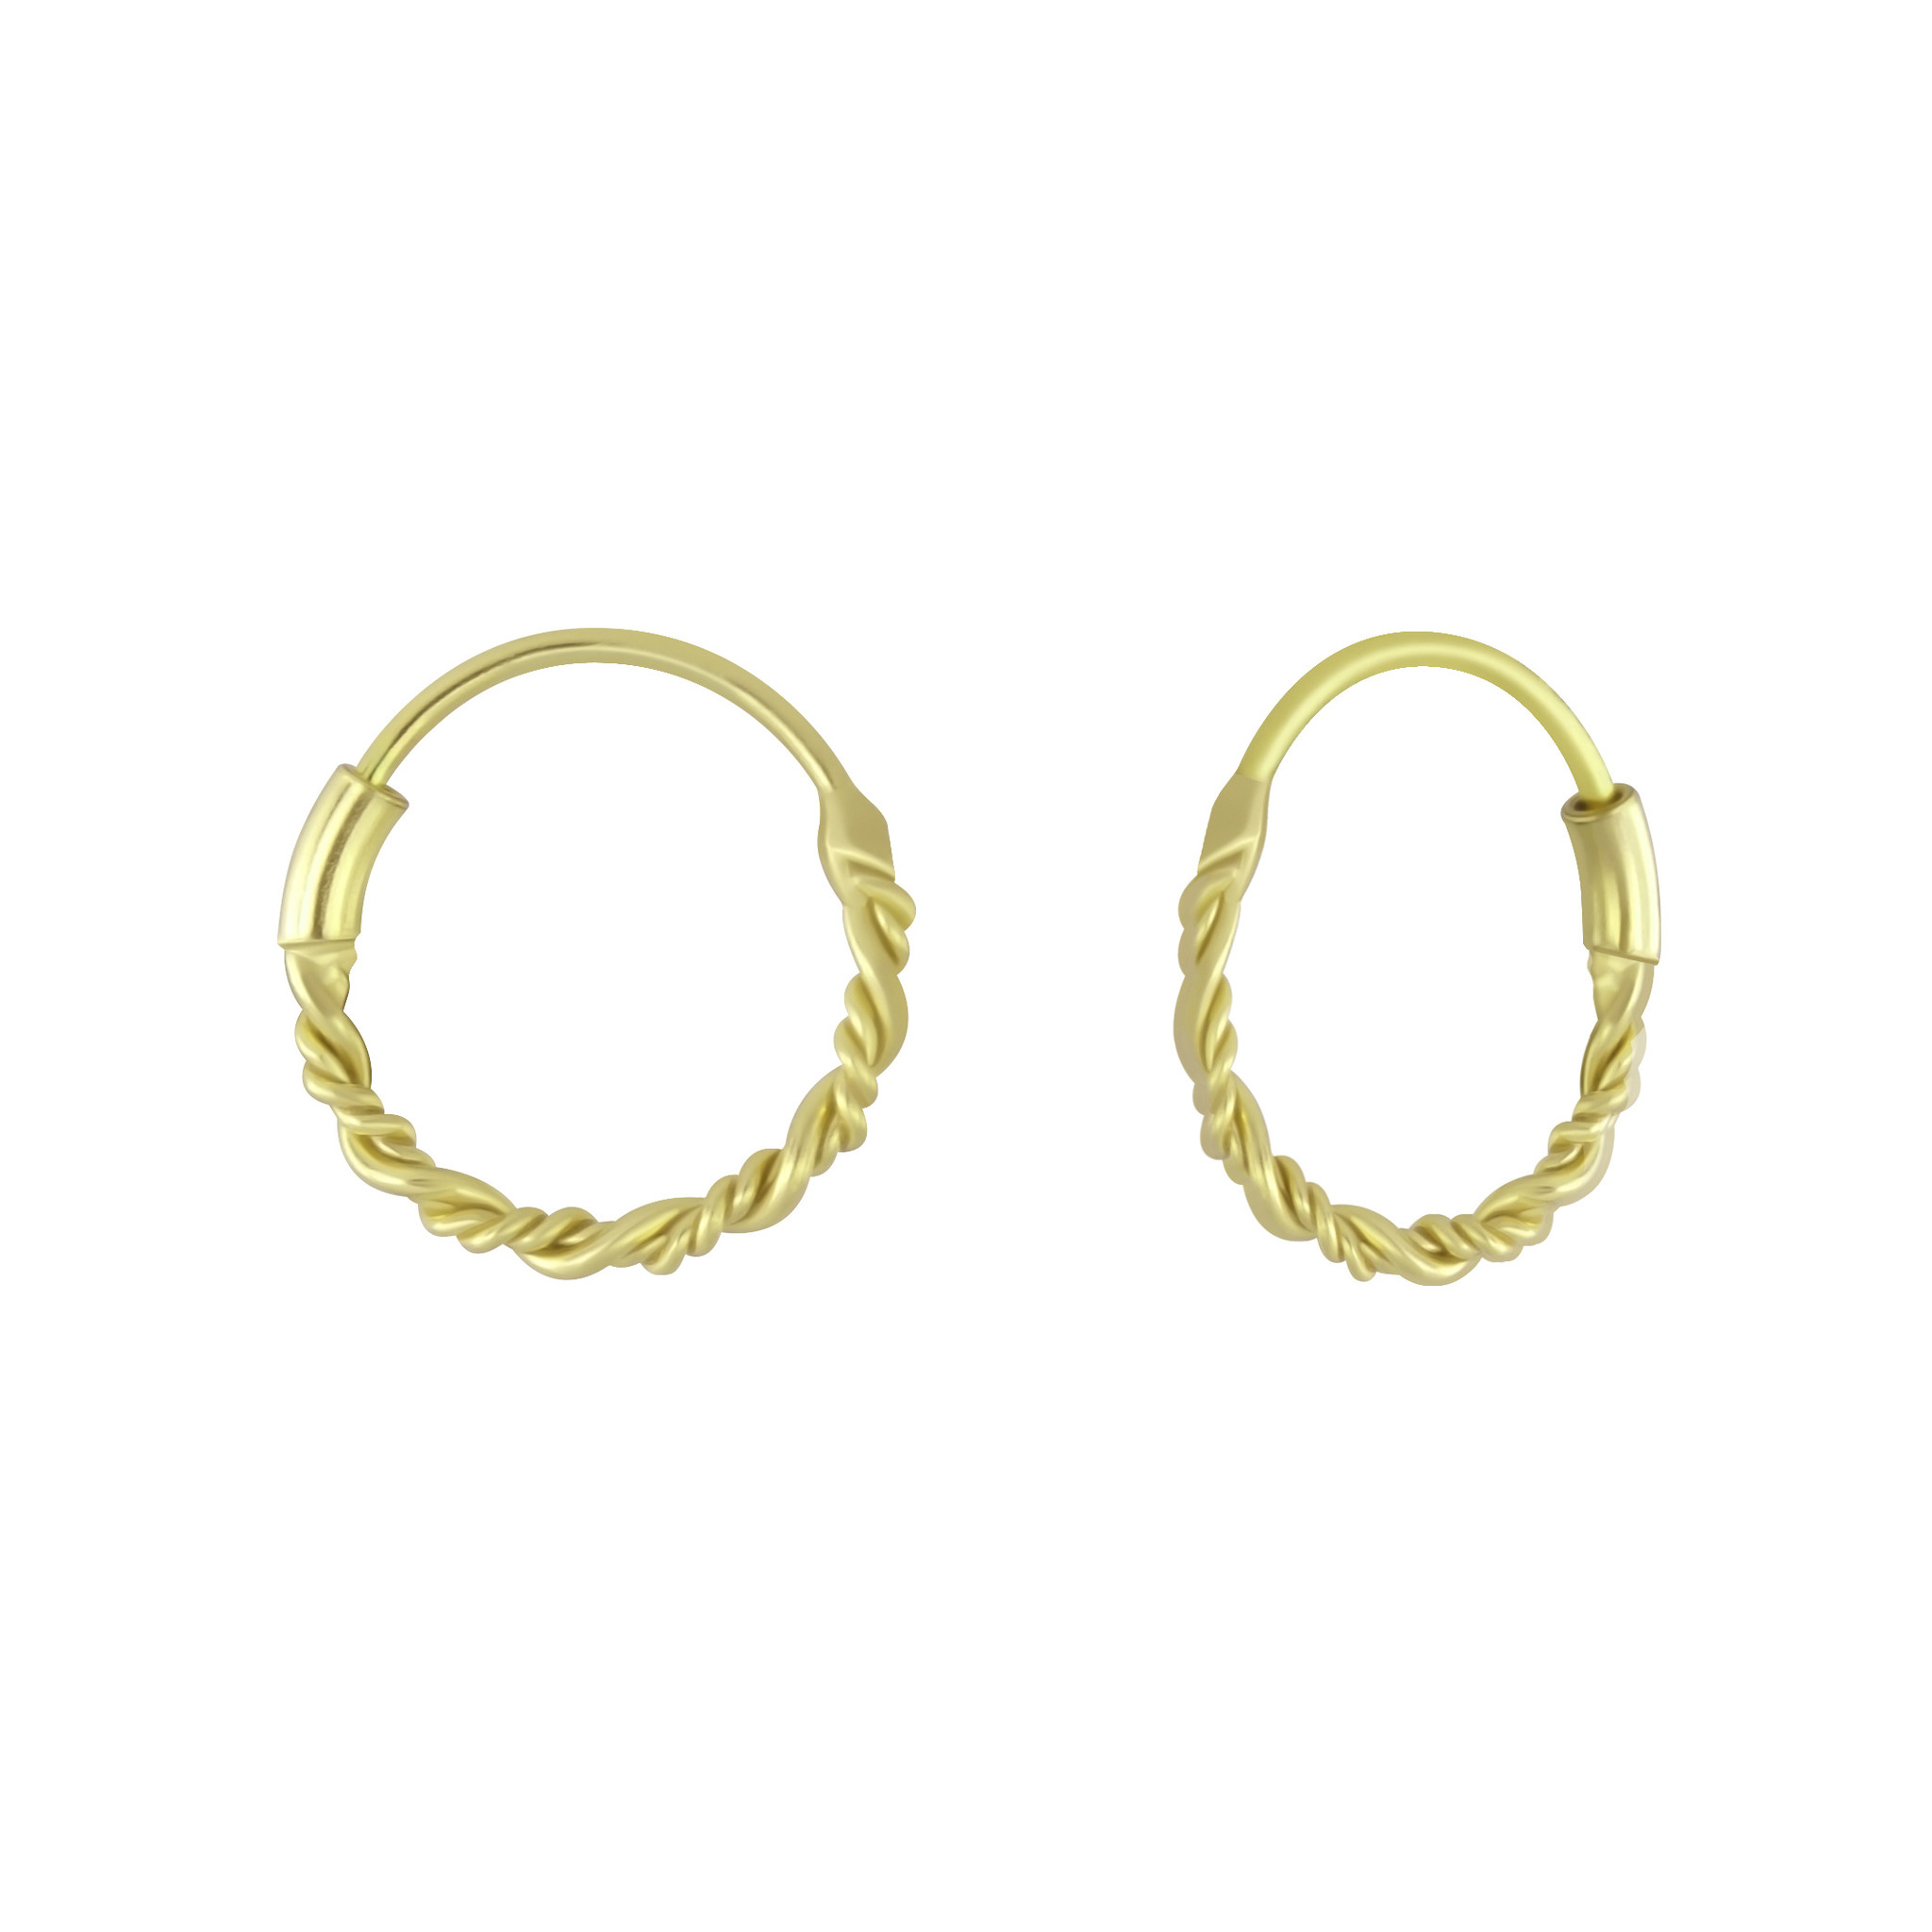 Small Hoops Earrings braided - 925 Sterling Silver Gold-1